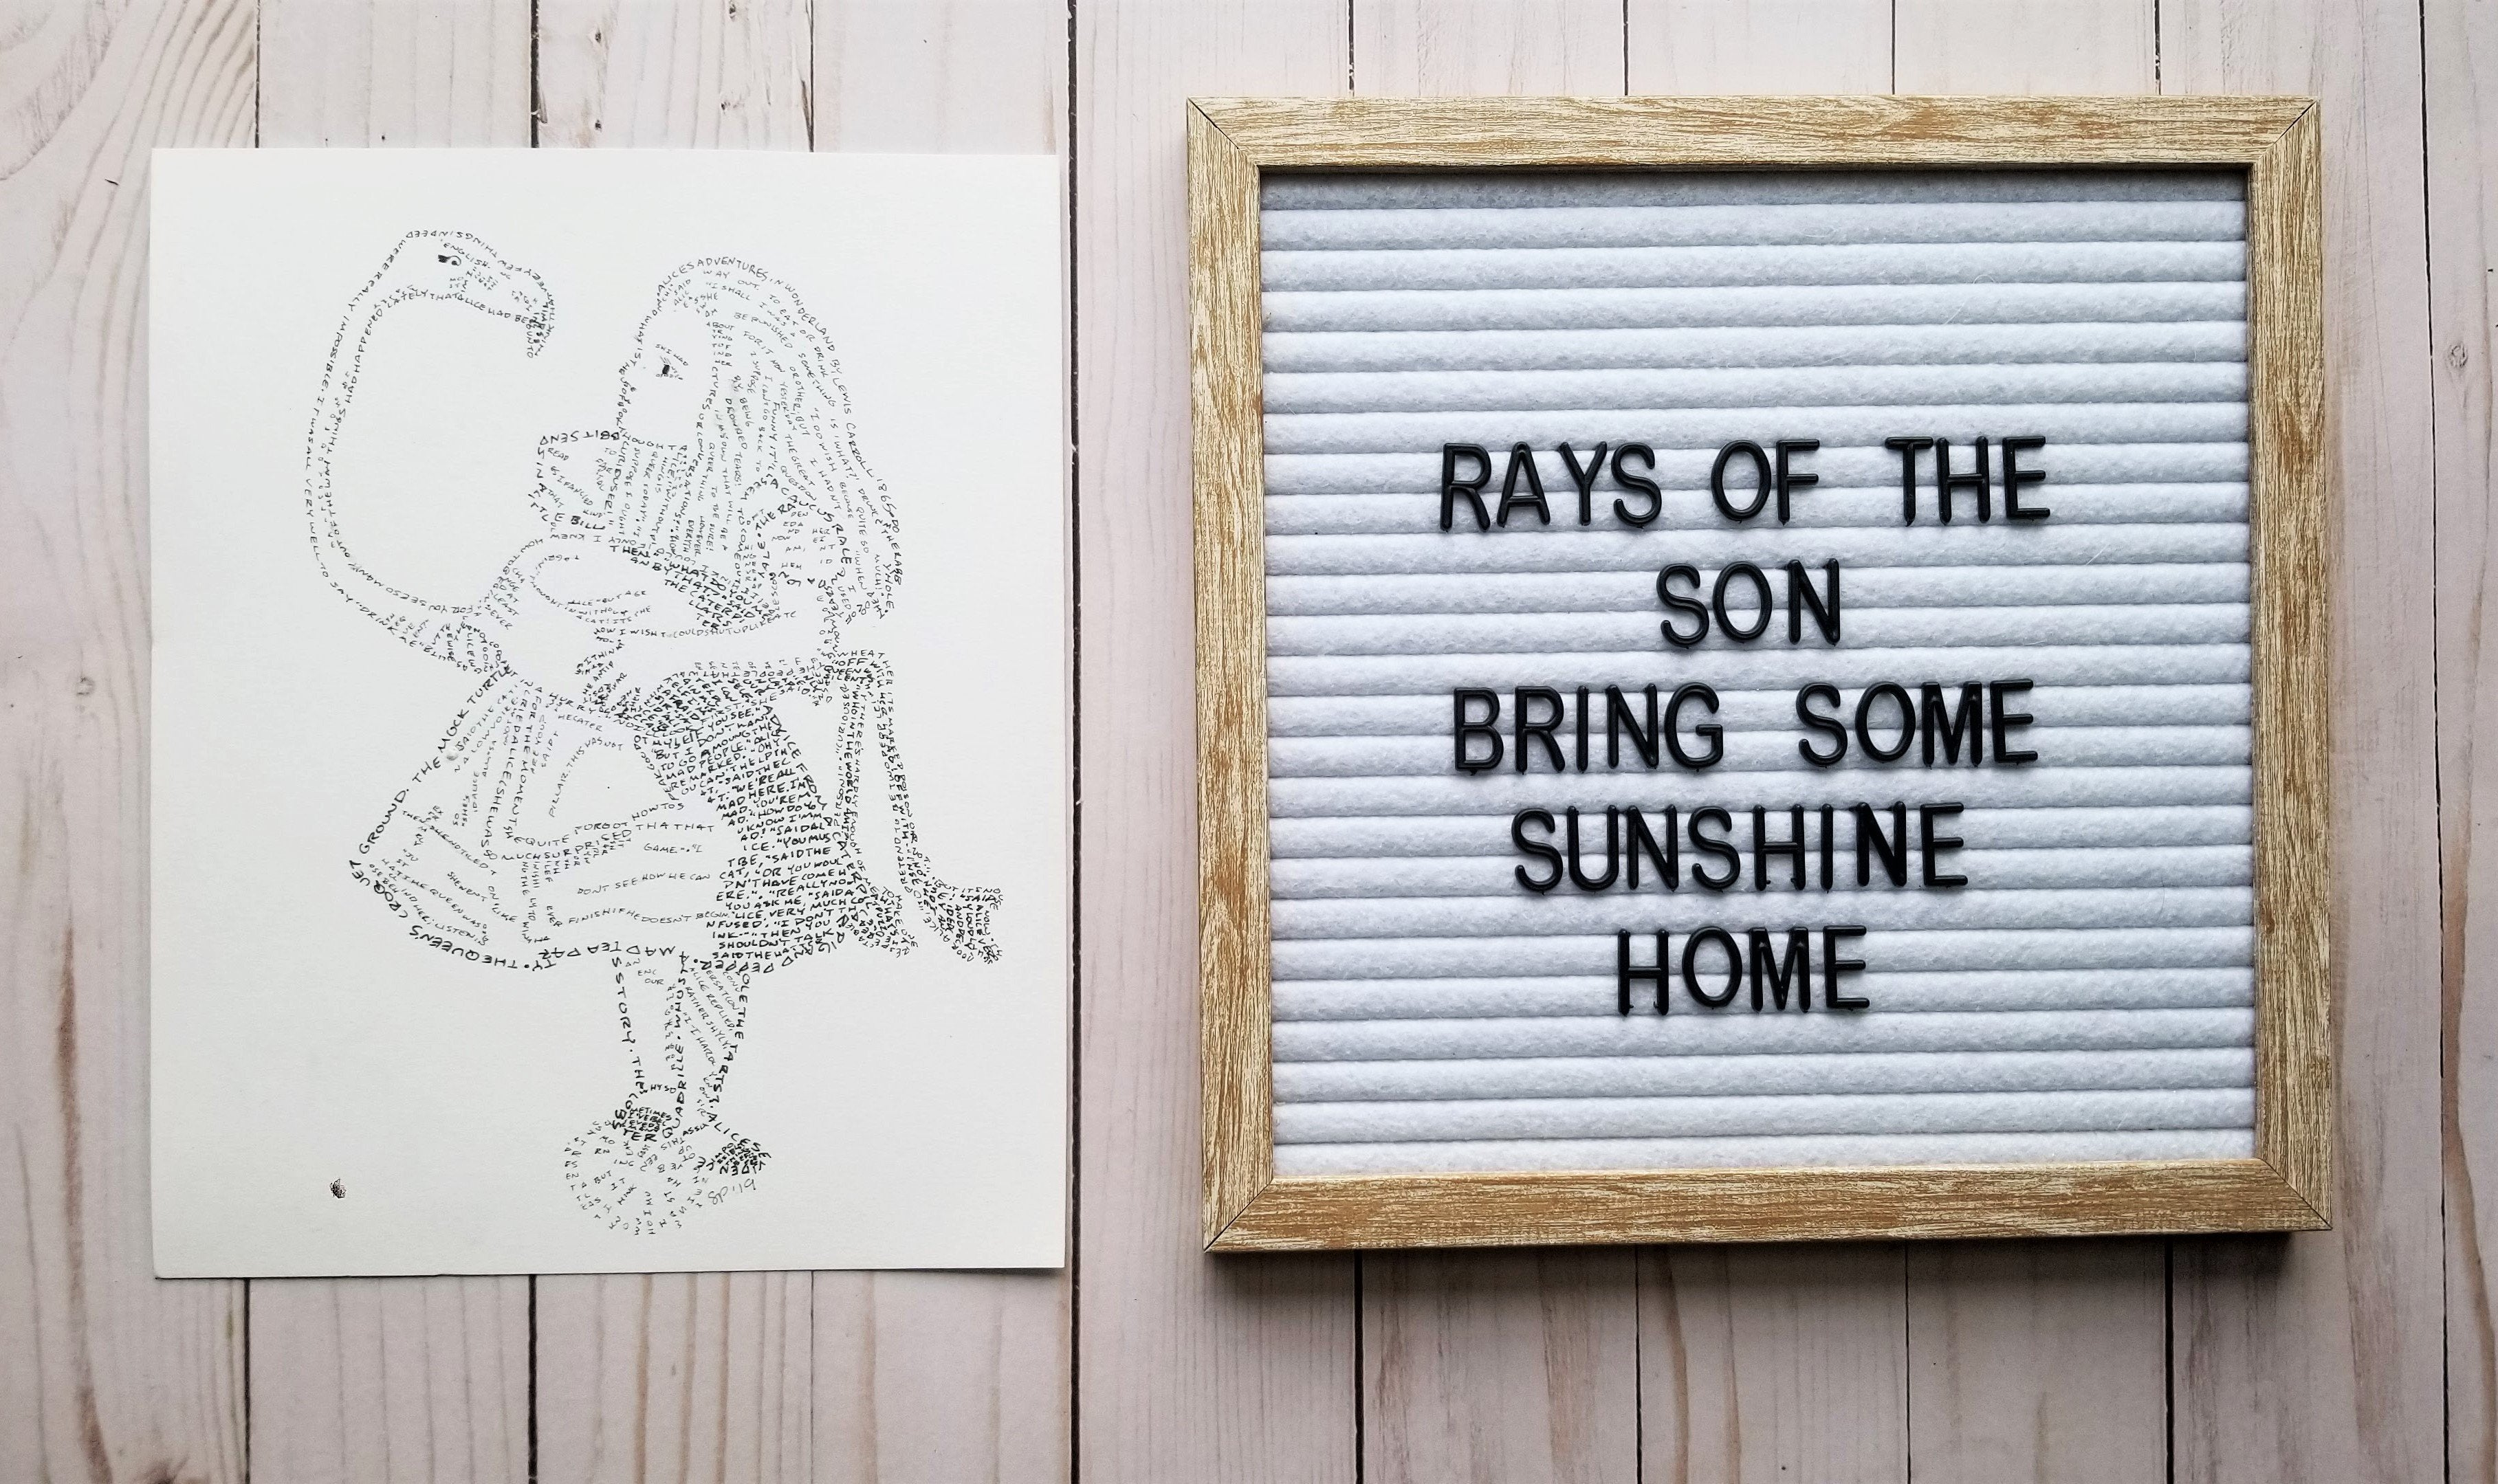 Alice in Wonderland Quotes Word Art - Rays of the Son